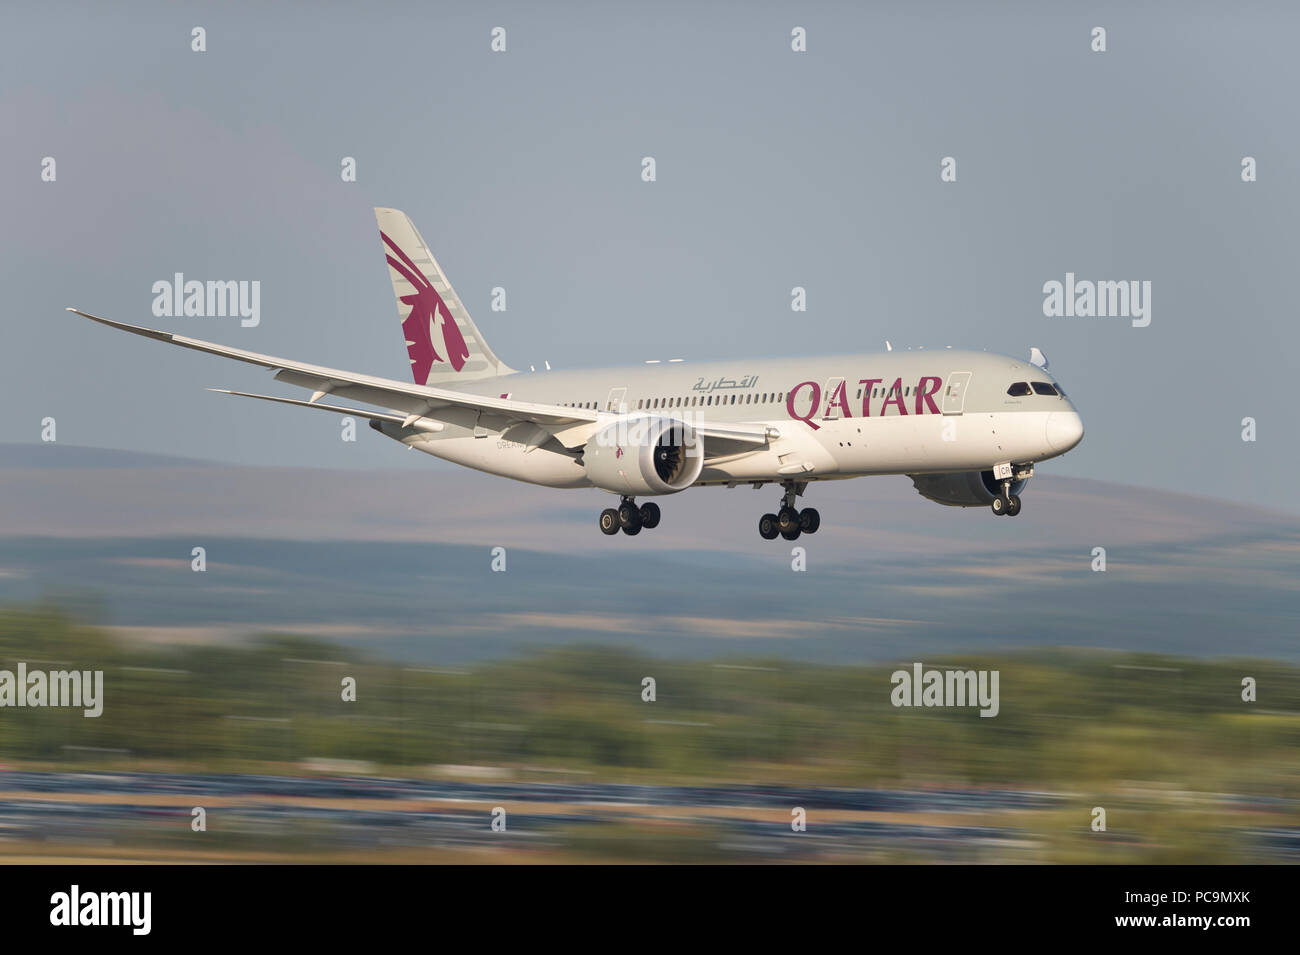 A Qatar Airways Boeing 787-8 comes in to land at Manchester Airport, UK. - Stock Image